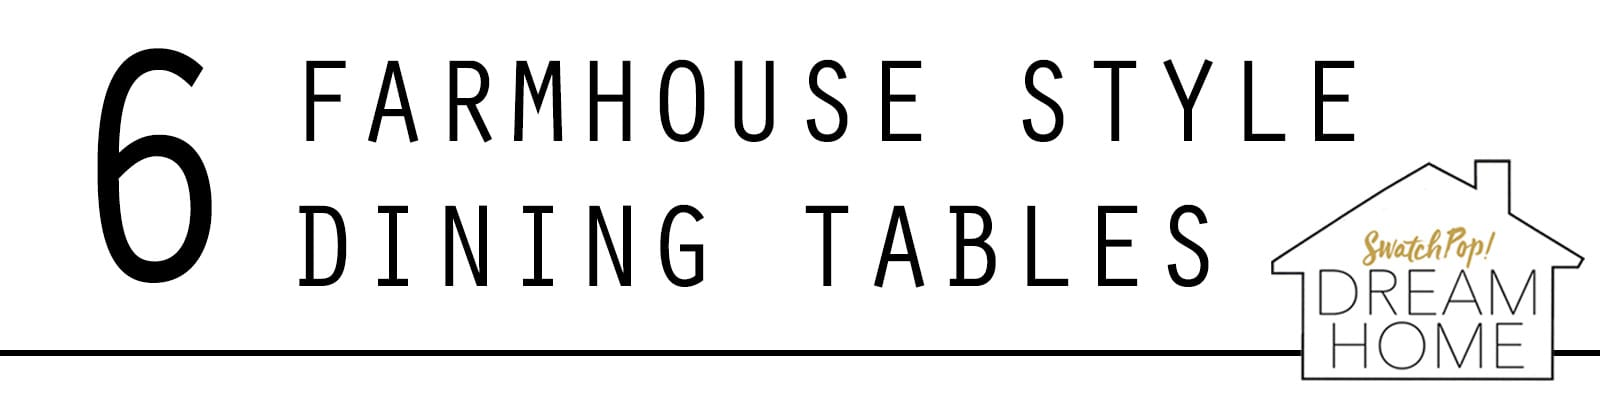 Farmhouse Style Dining Tables